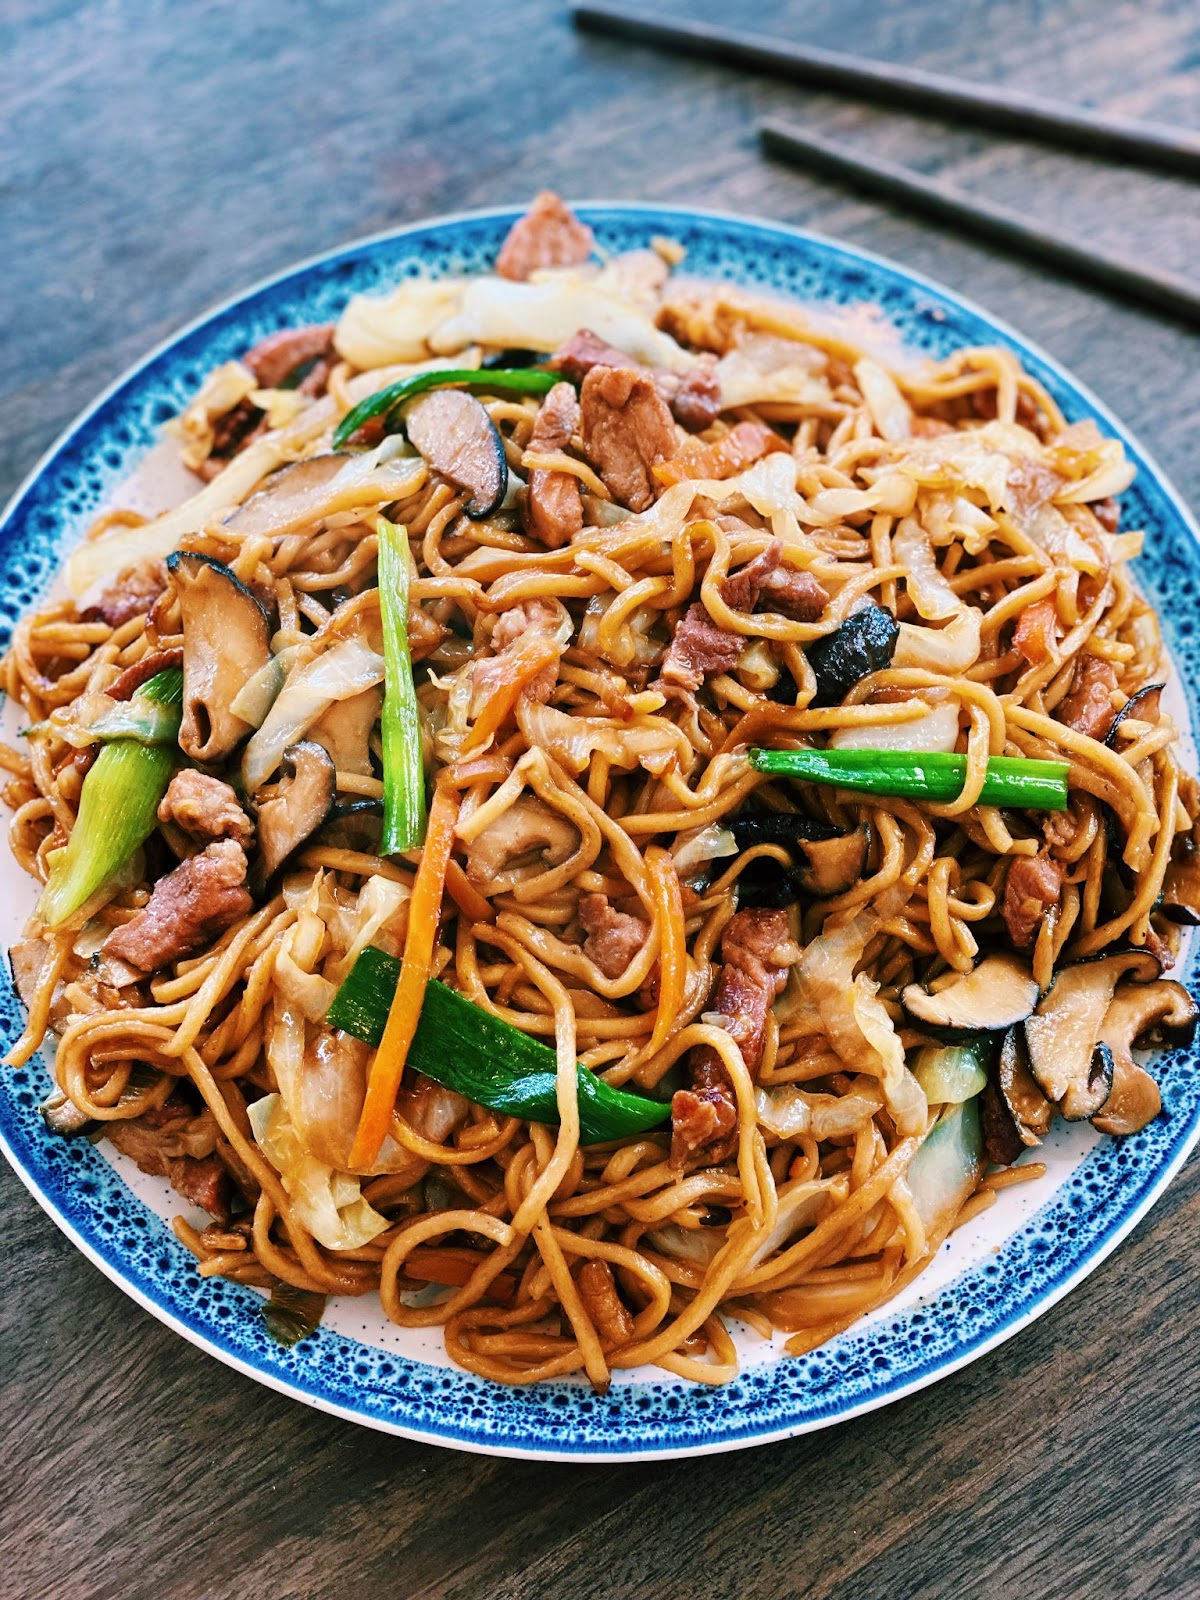 Taiwanese Chow Mein (Authentic Traditional Recipe!)